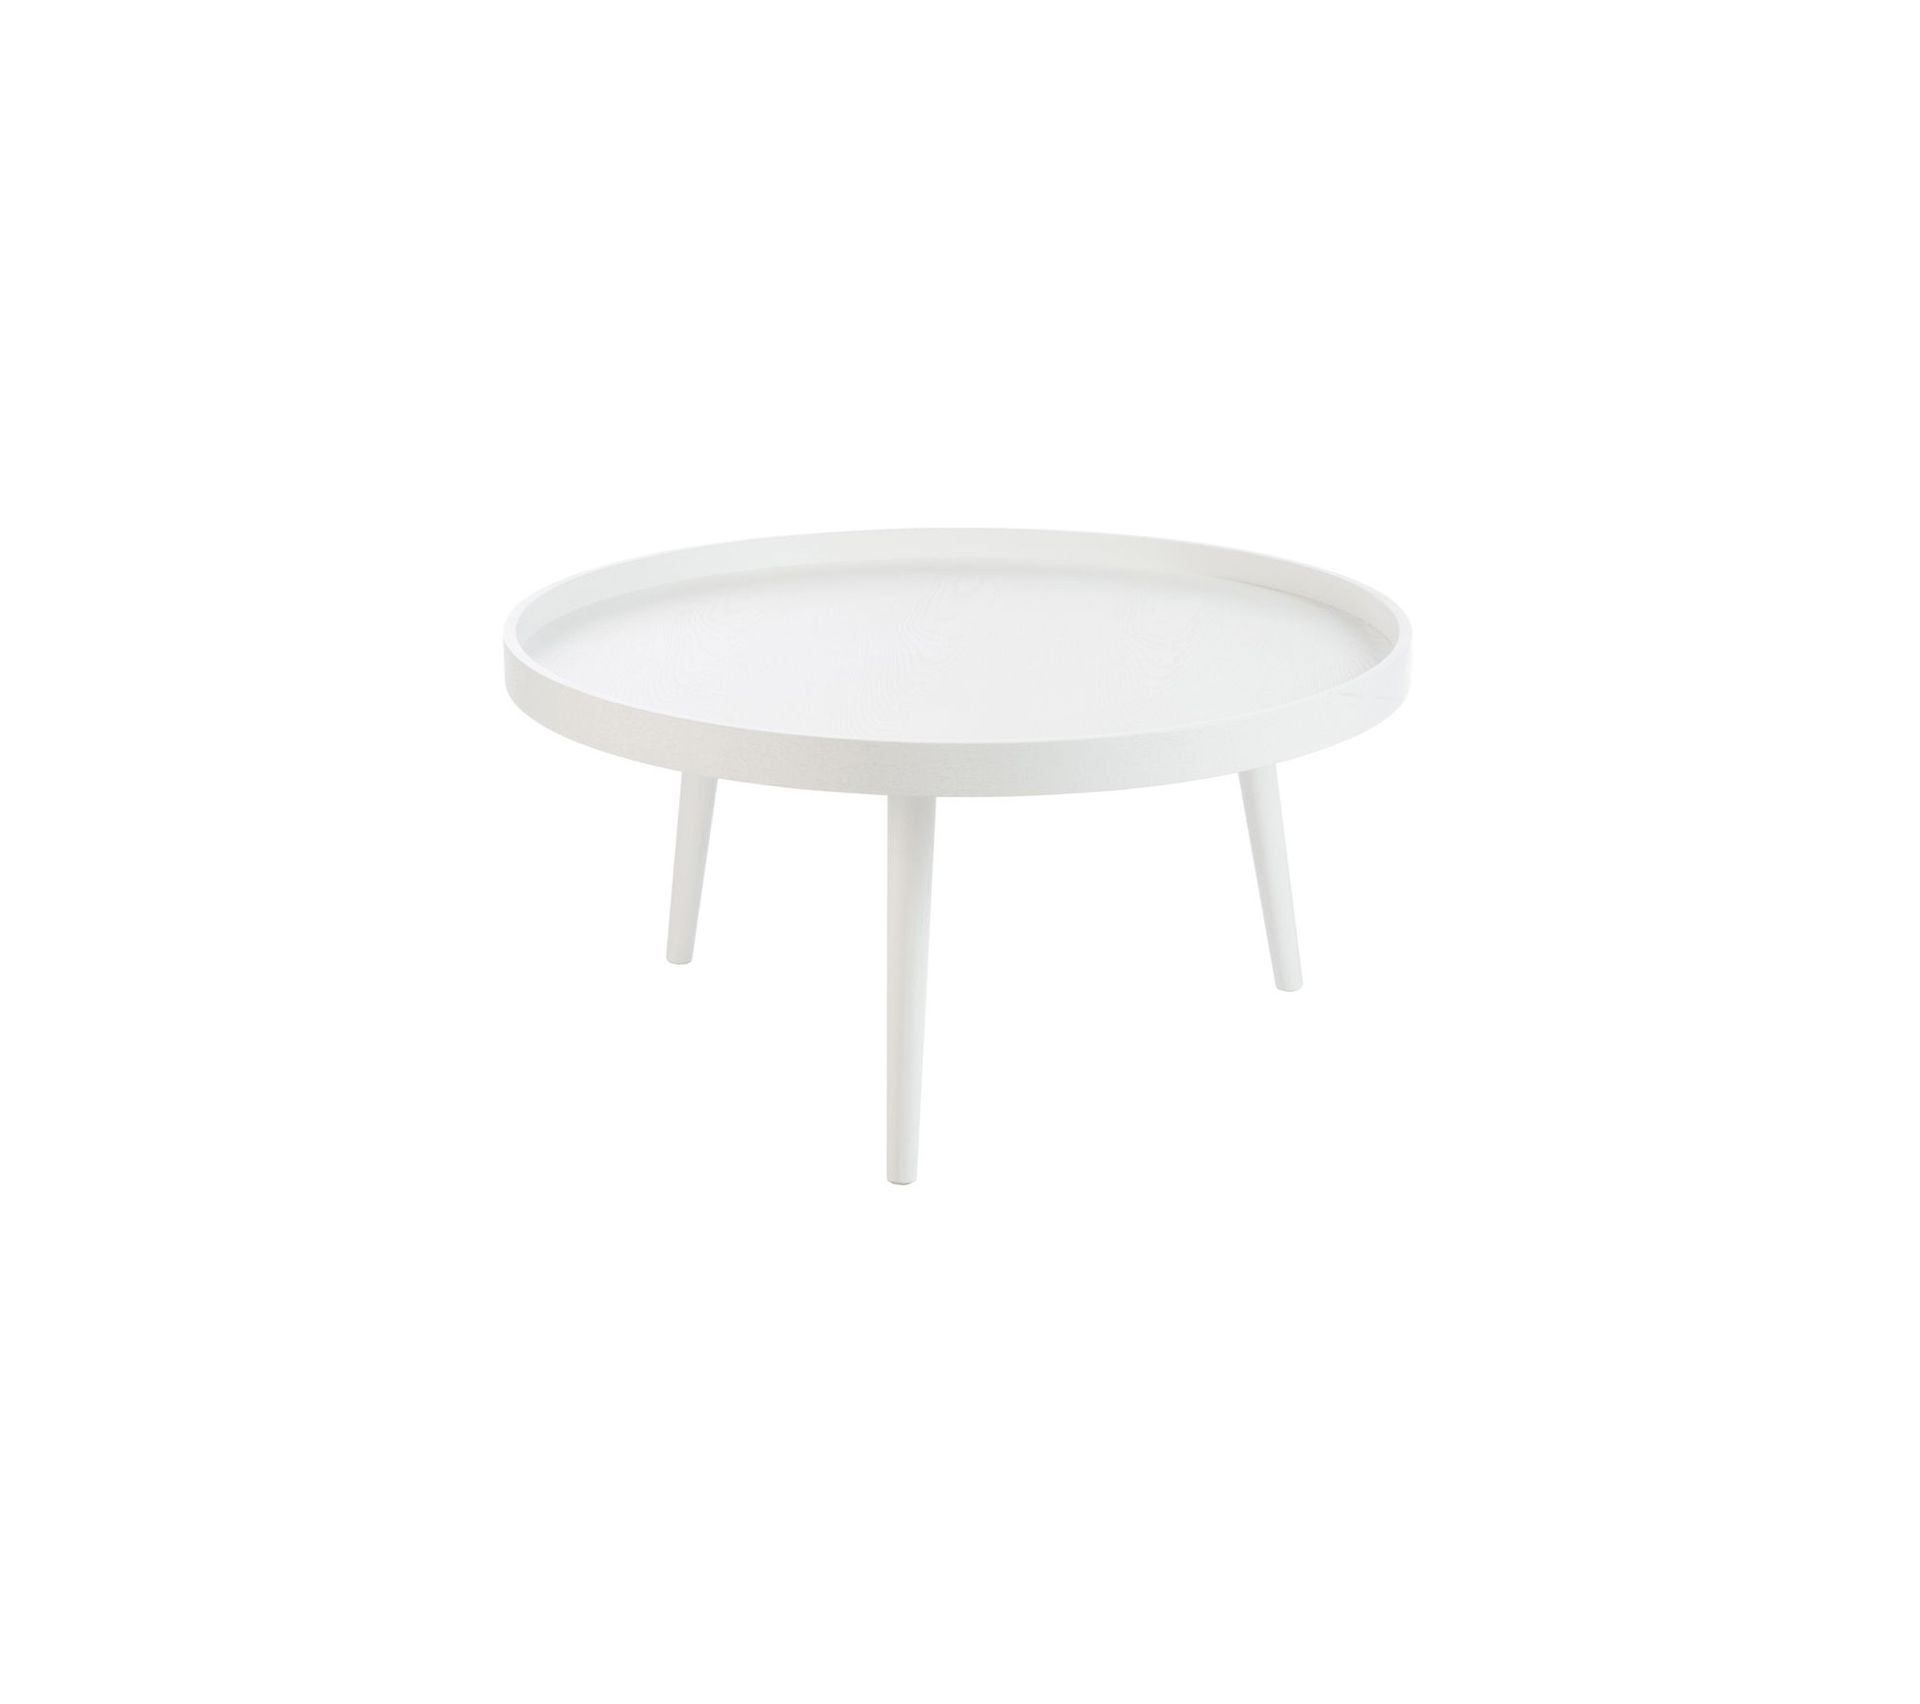 Table Basse Ronde Bois Blanc Table Basse But